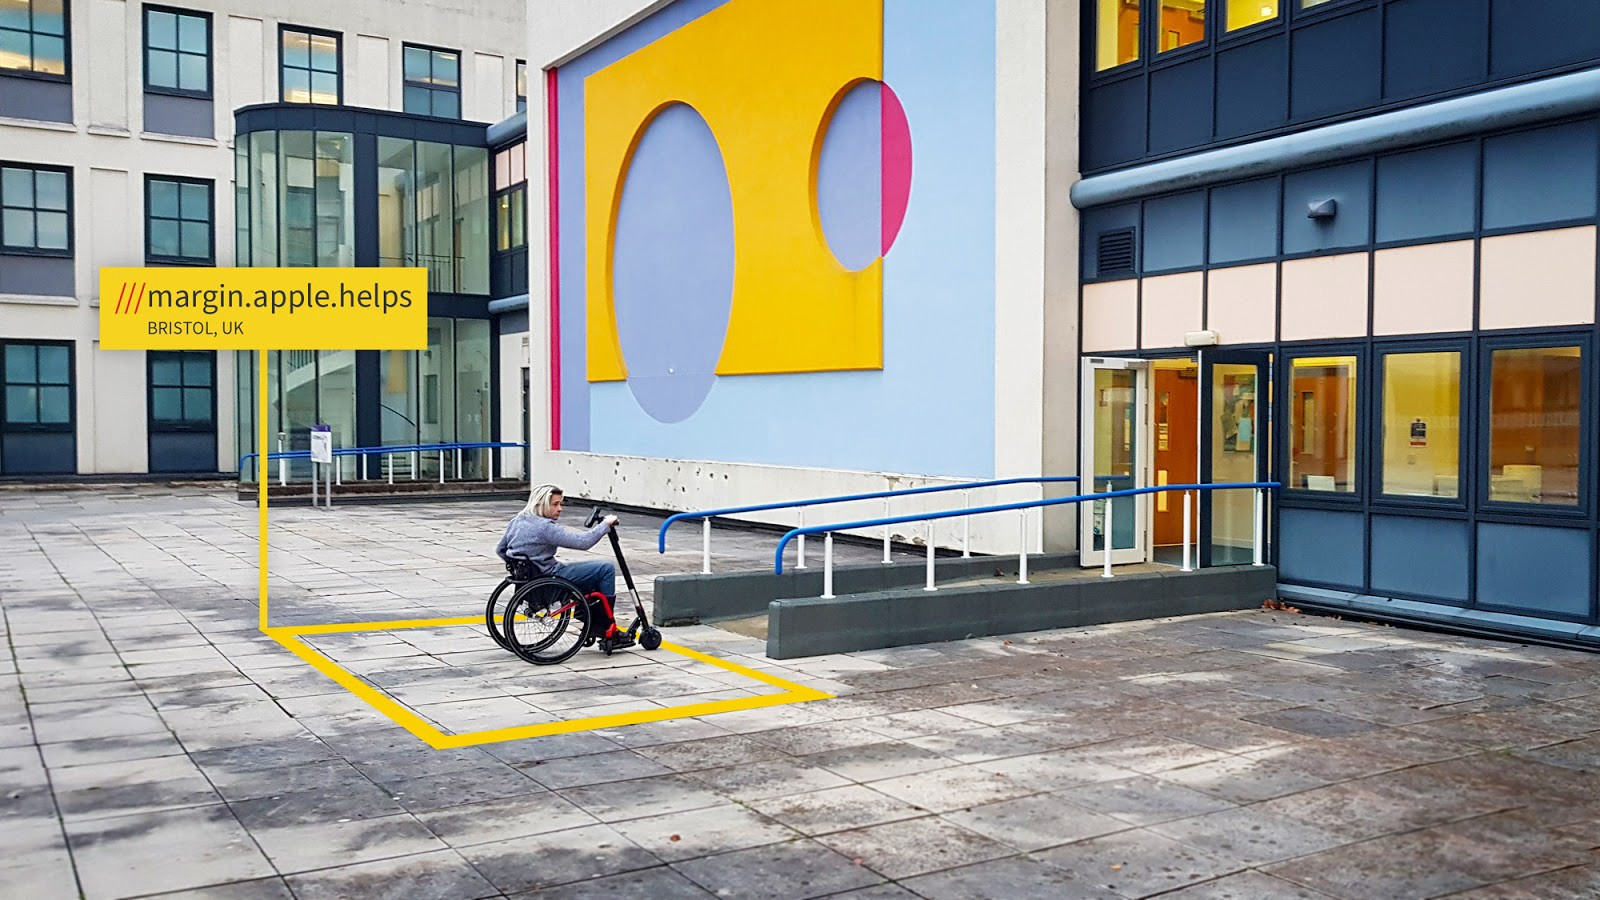 A person using a mobility scooter waits outside the accessible entrance of a colourful building in Bristol